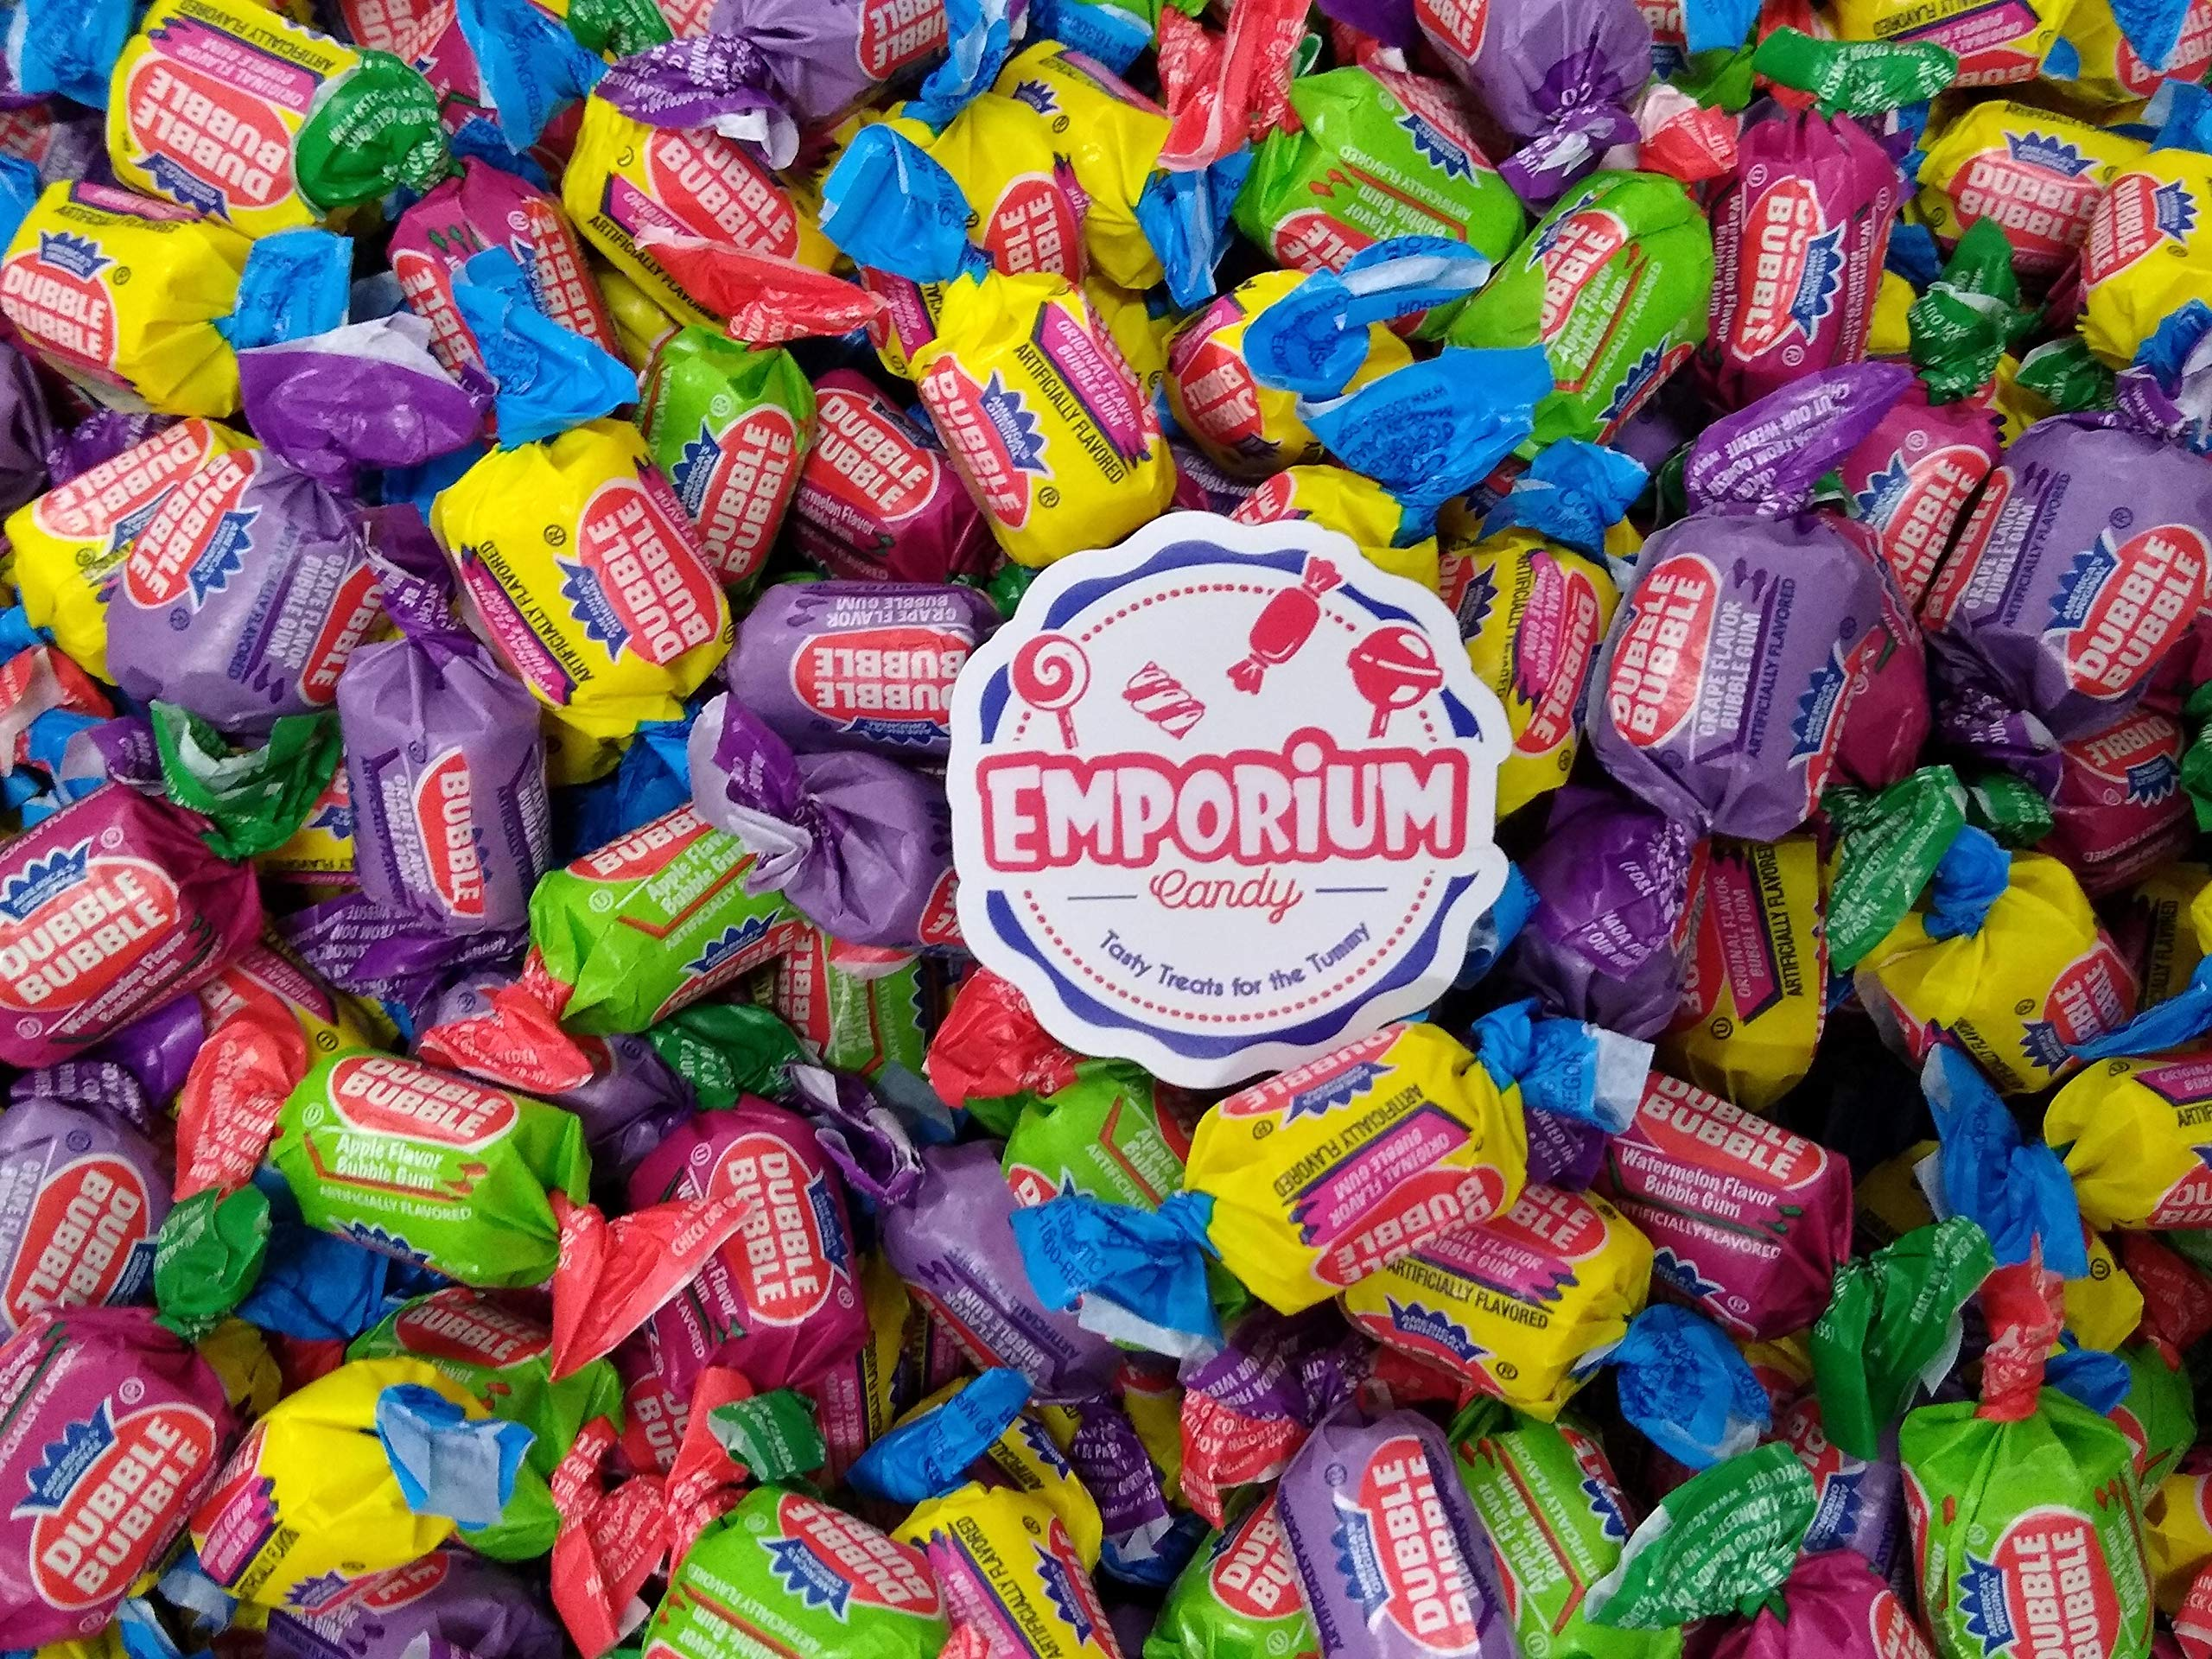 Dubble Bubble - Delicious Assorted Flavor Wrapped Bubble Gum 1.5 lbs Original Apple Watermelon Grape Assorted Gum with Refrigerator Magnet